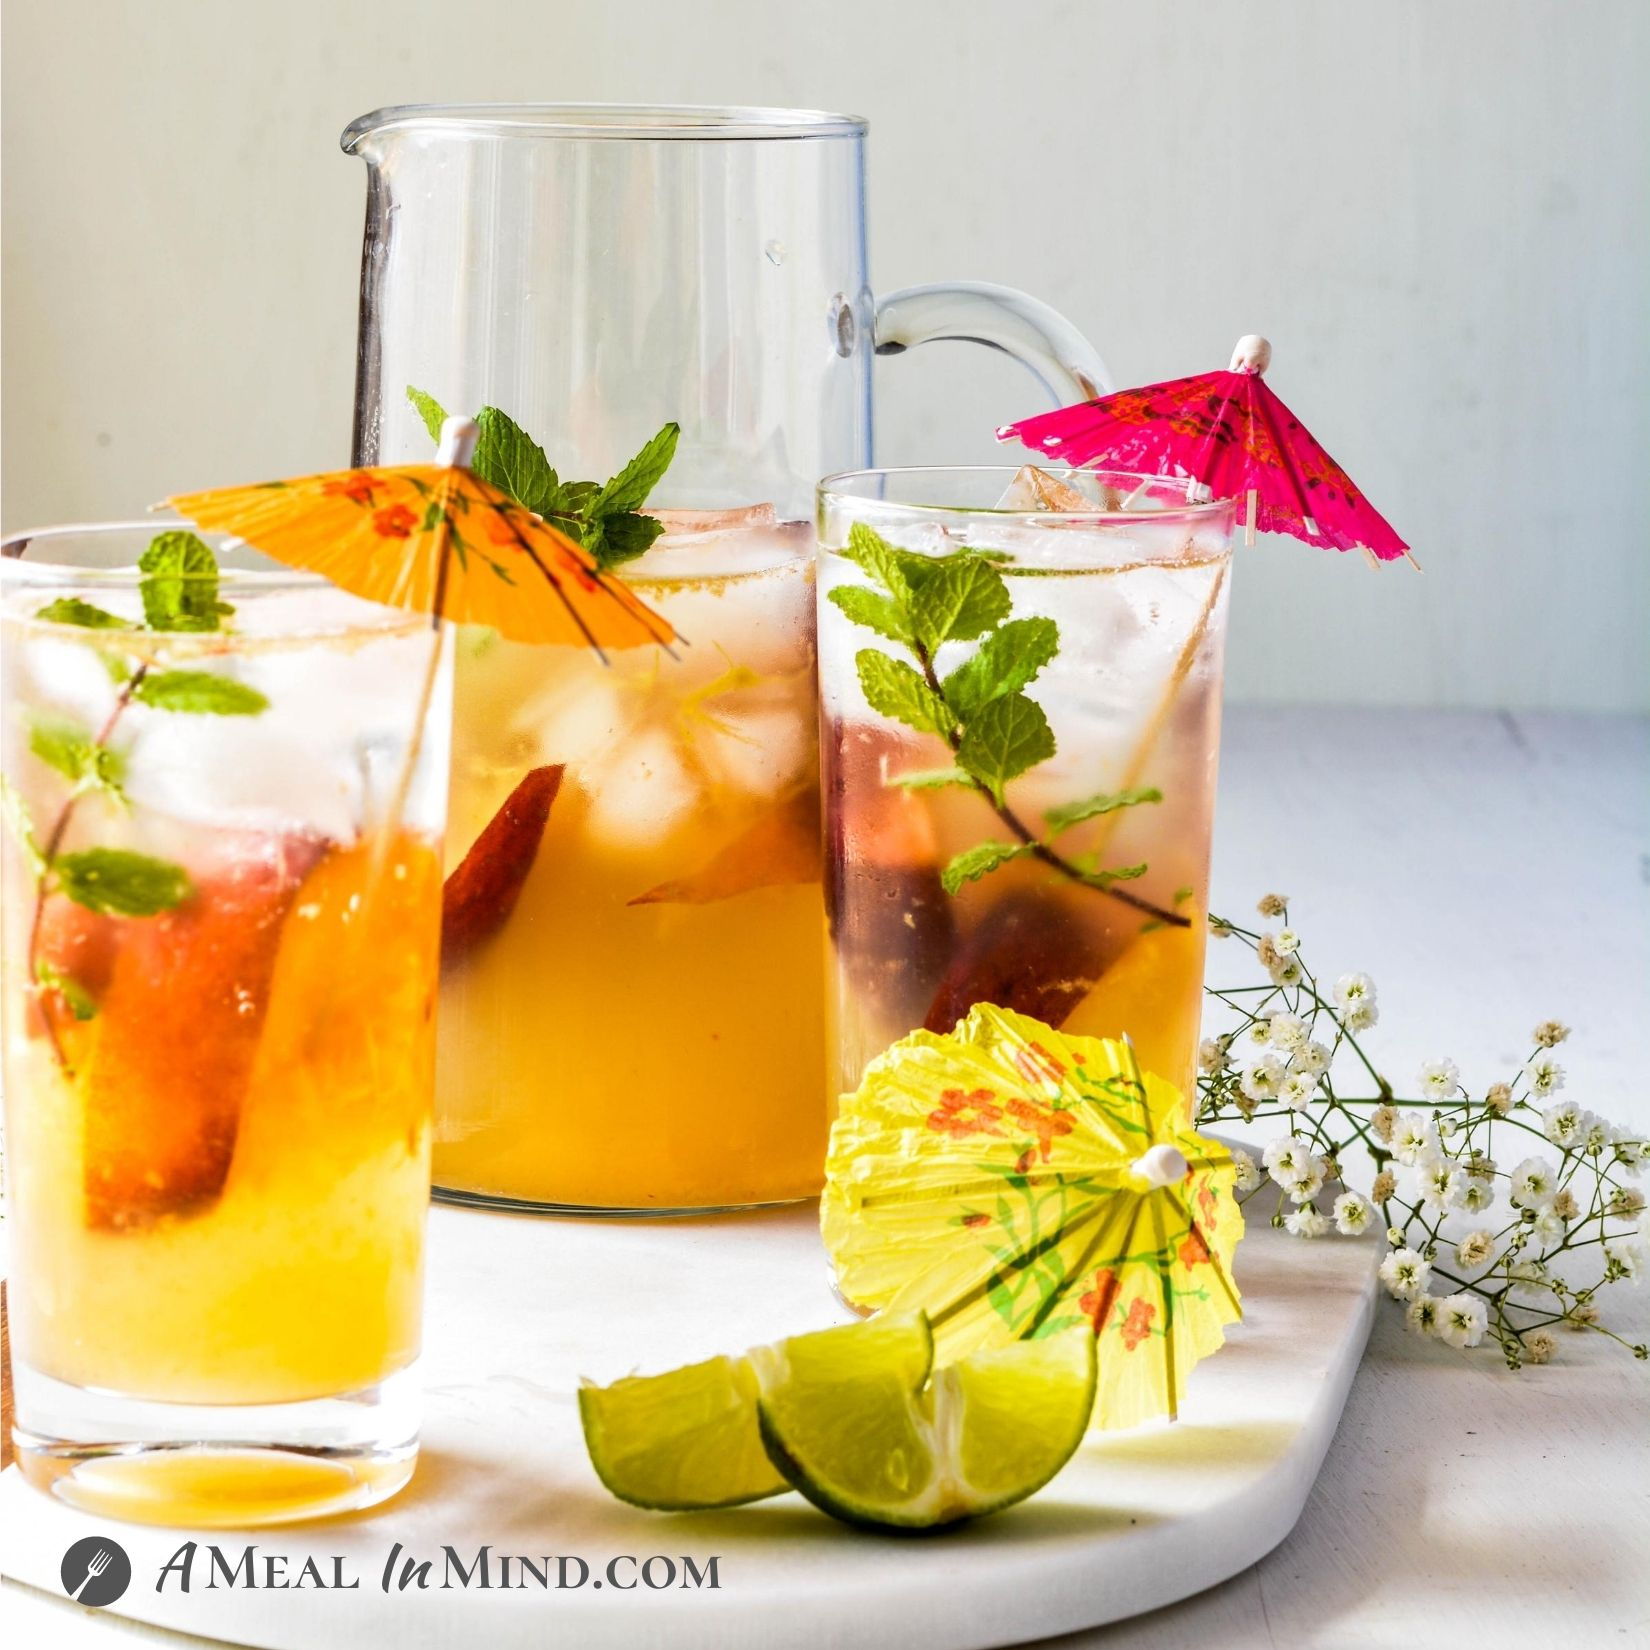 Peach-Ginger Limeade Mocktail side view in glasses and pitcher